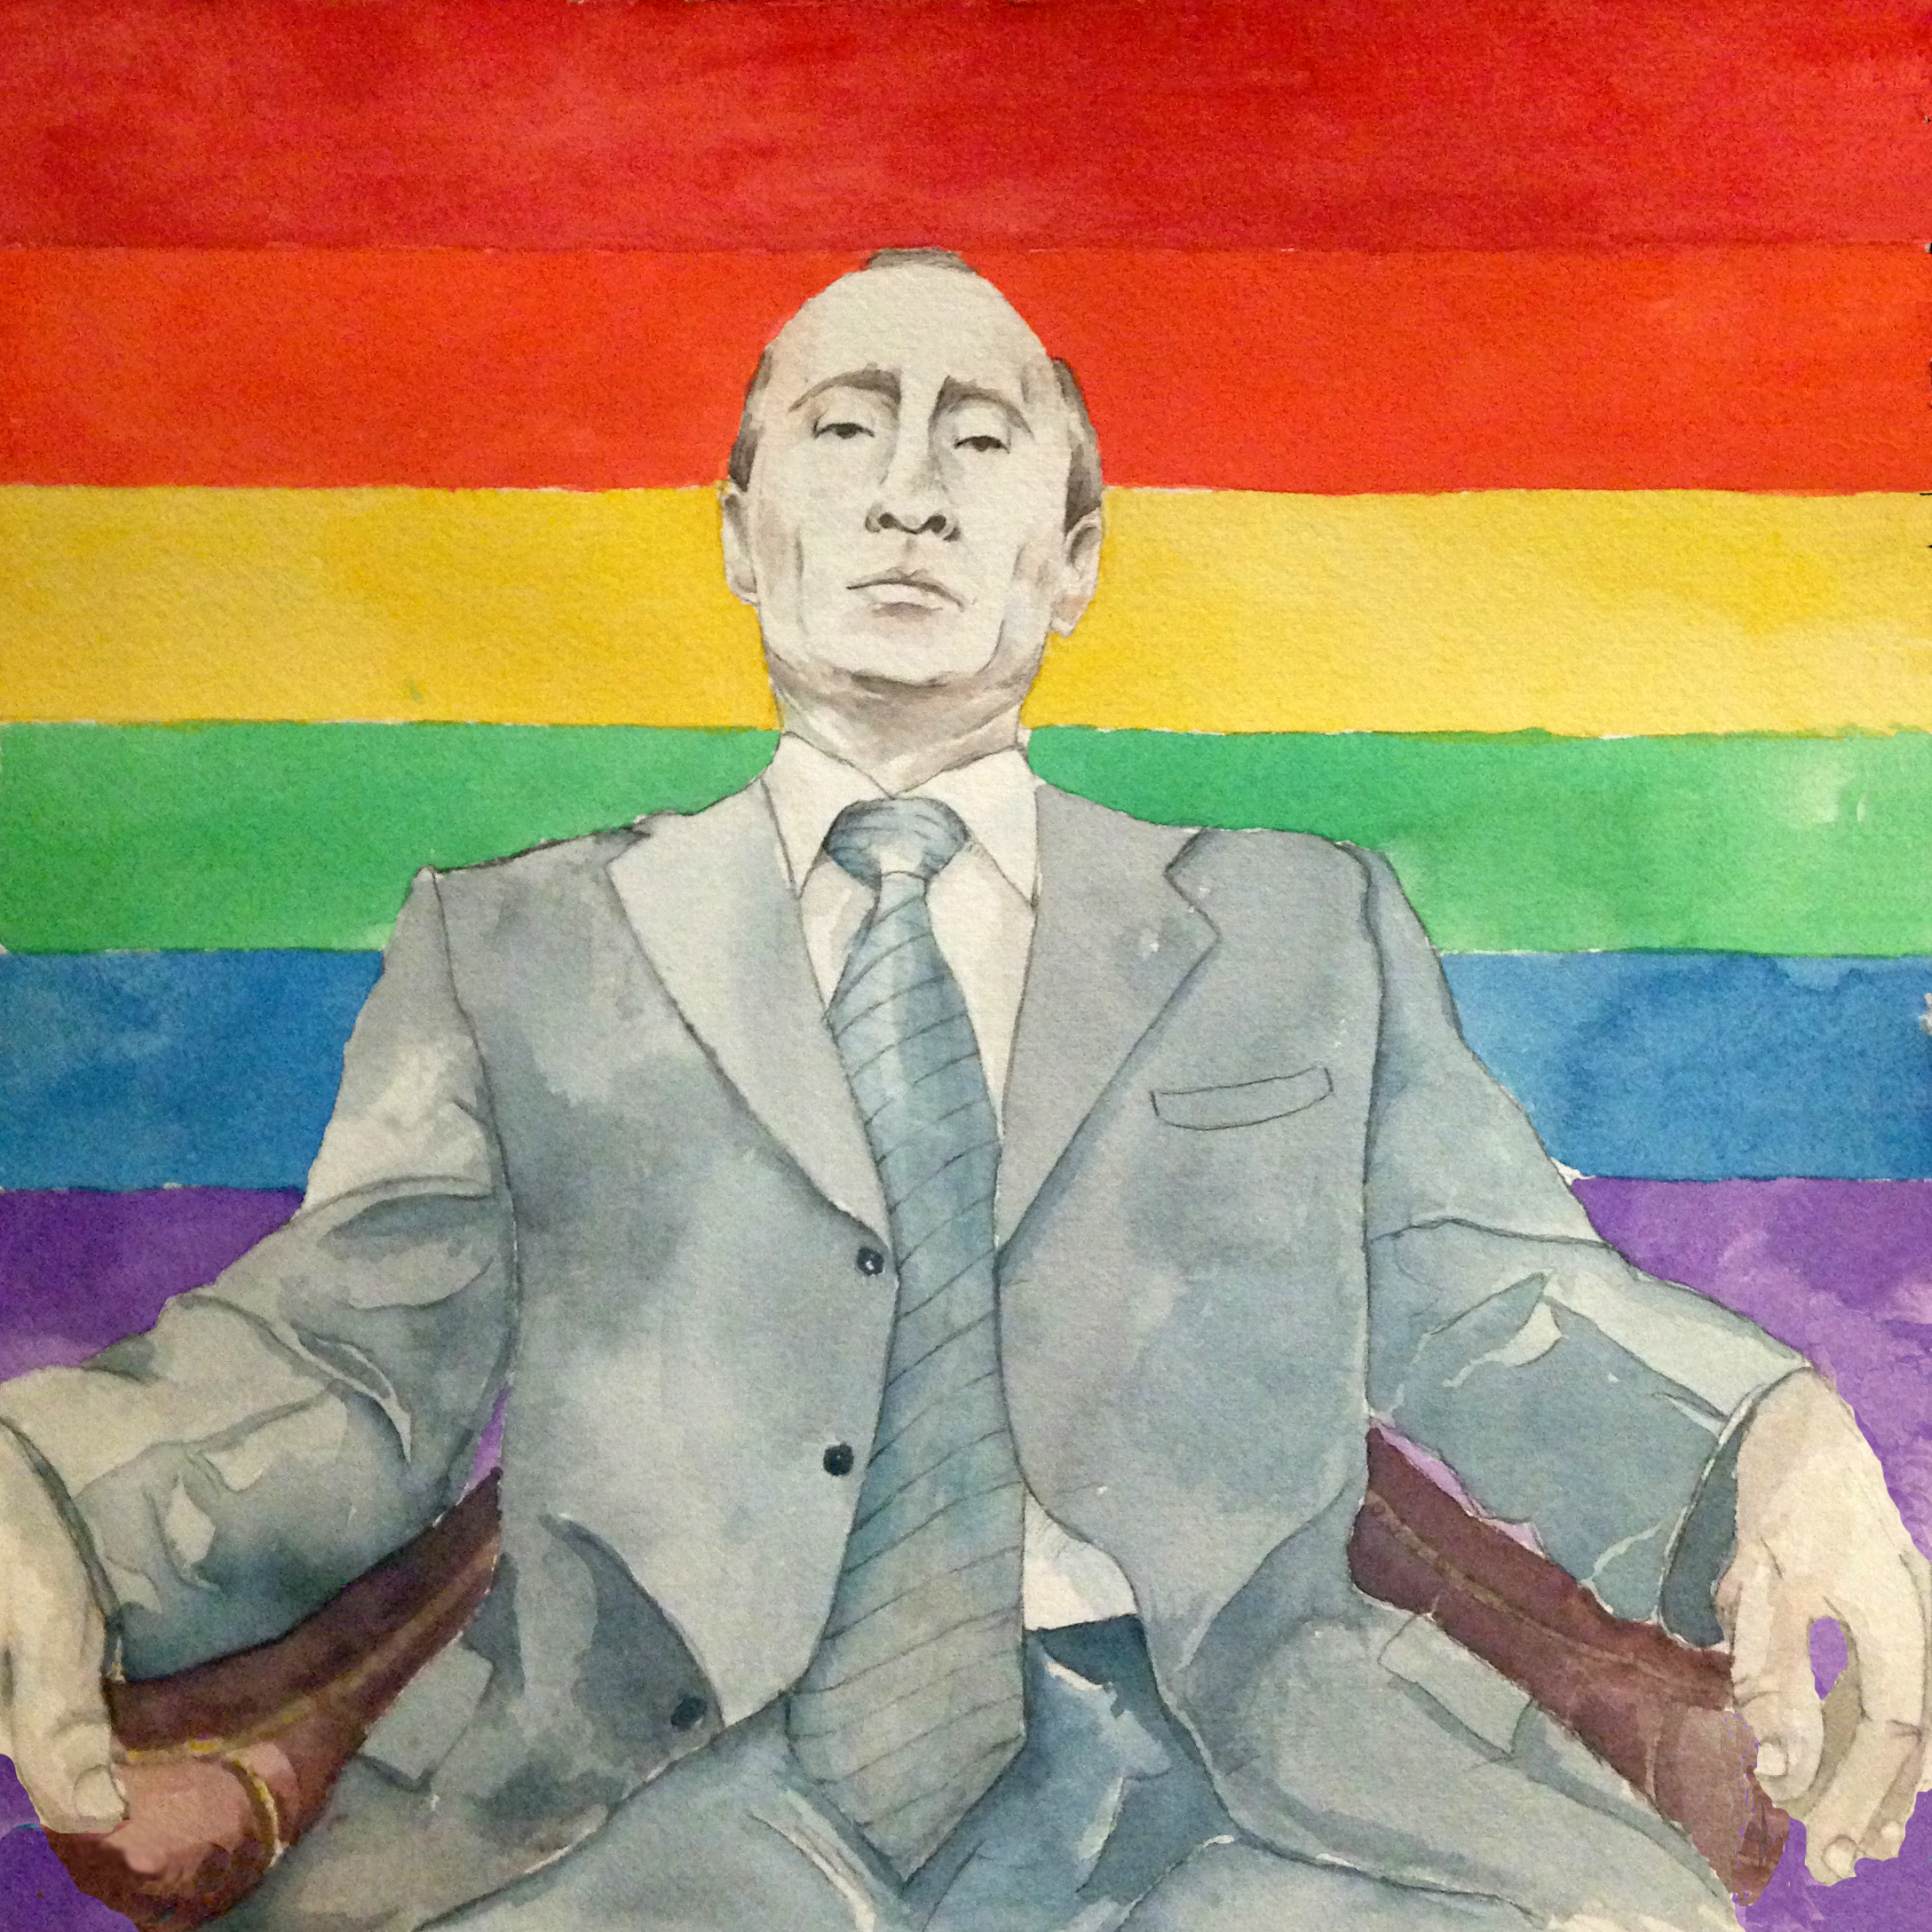 Putin's Prerogative: The Kremlin's Anti-Gay Crusade